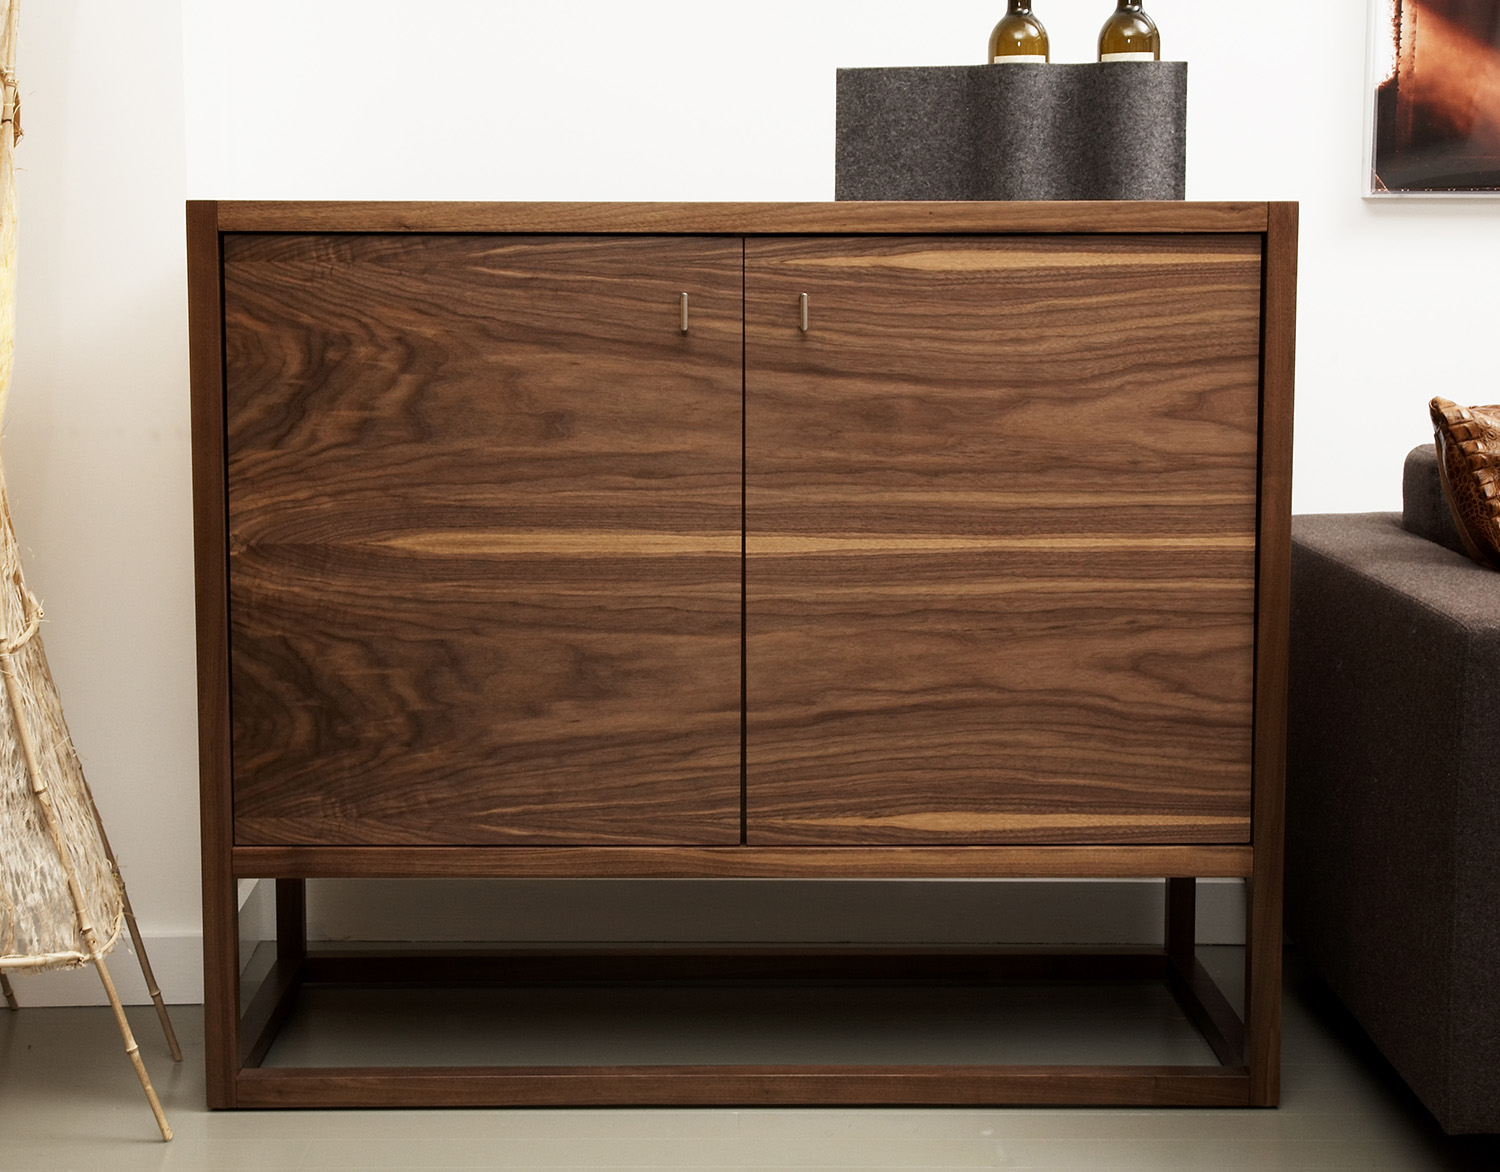 craftsmanship - Speke Klein furniture products are designed to last for many generations, and apply the finest modern production methods together with time-tested traditional techniques of woodcraft including speciality joinery, book-matched veneer and hand-finishing.